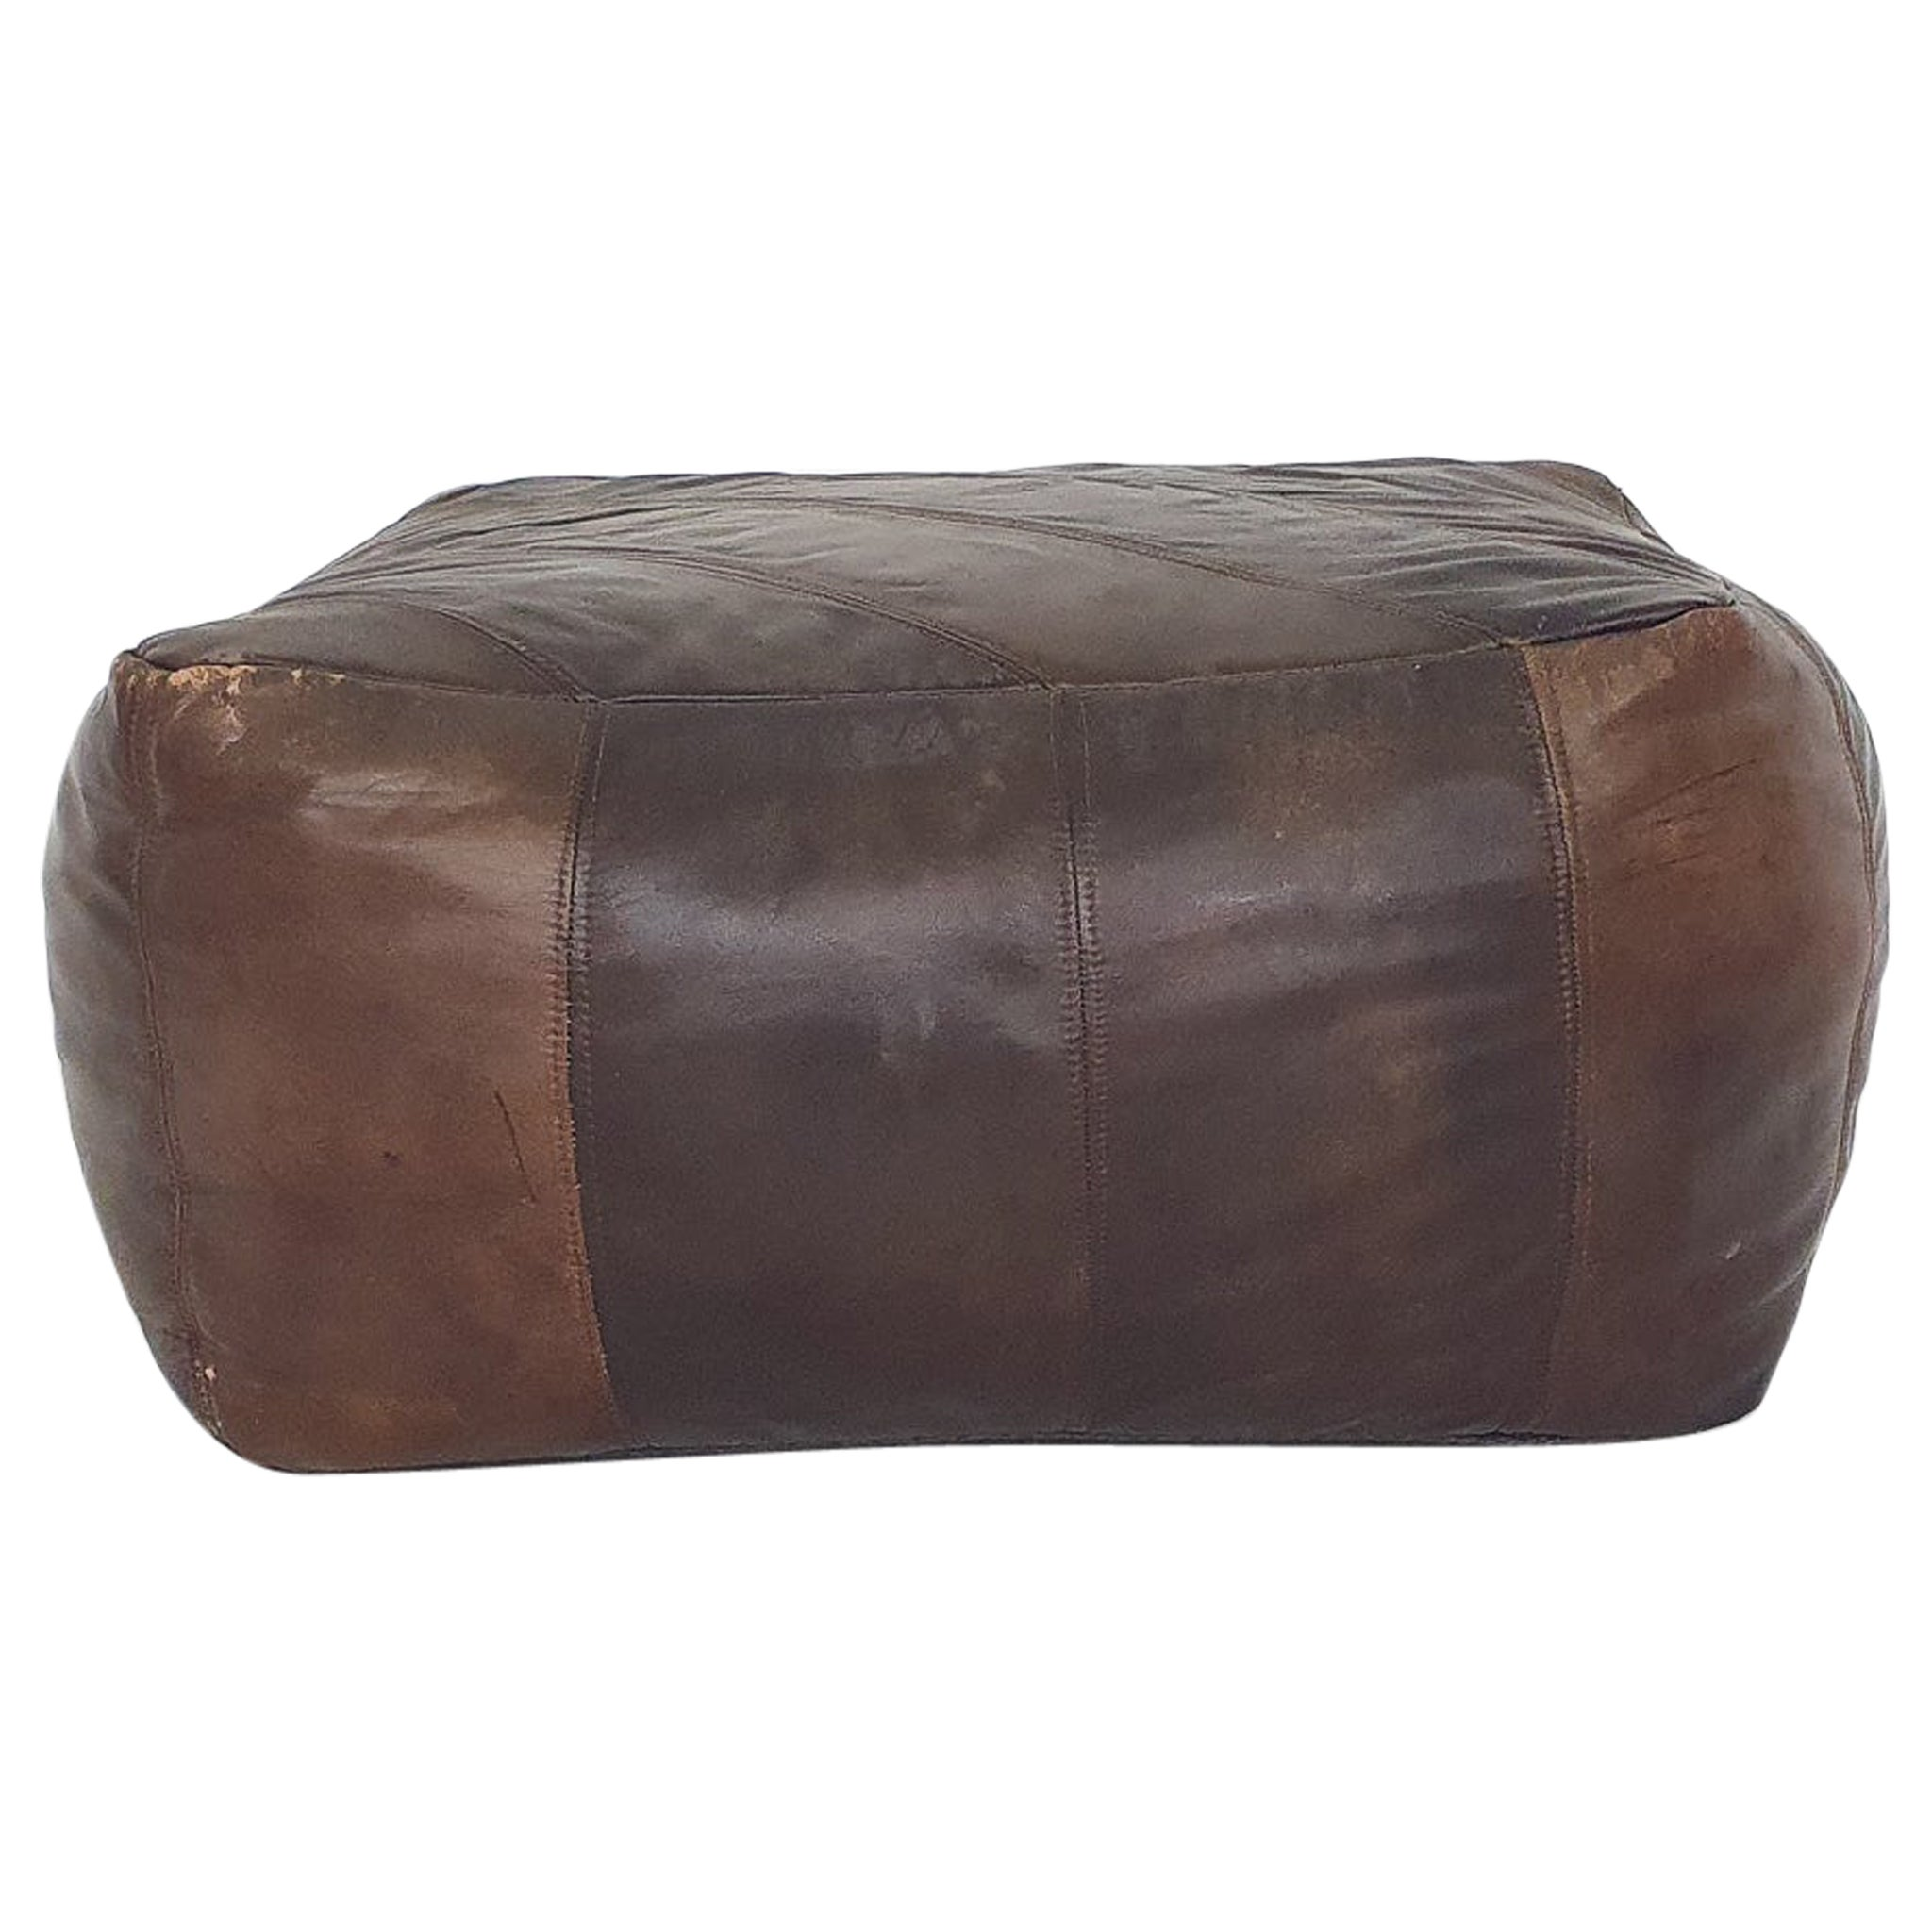 Square Leather Patchwork Poof or Ottoman, 1960s